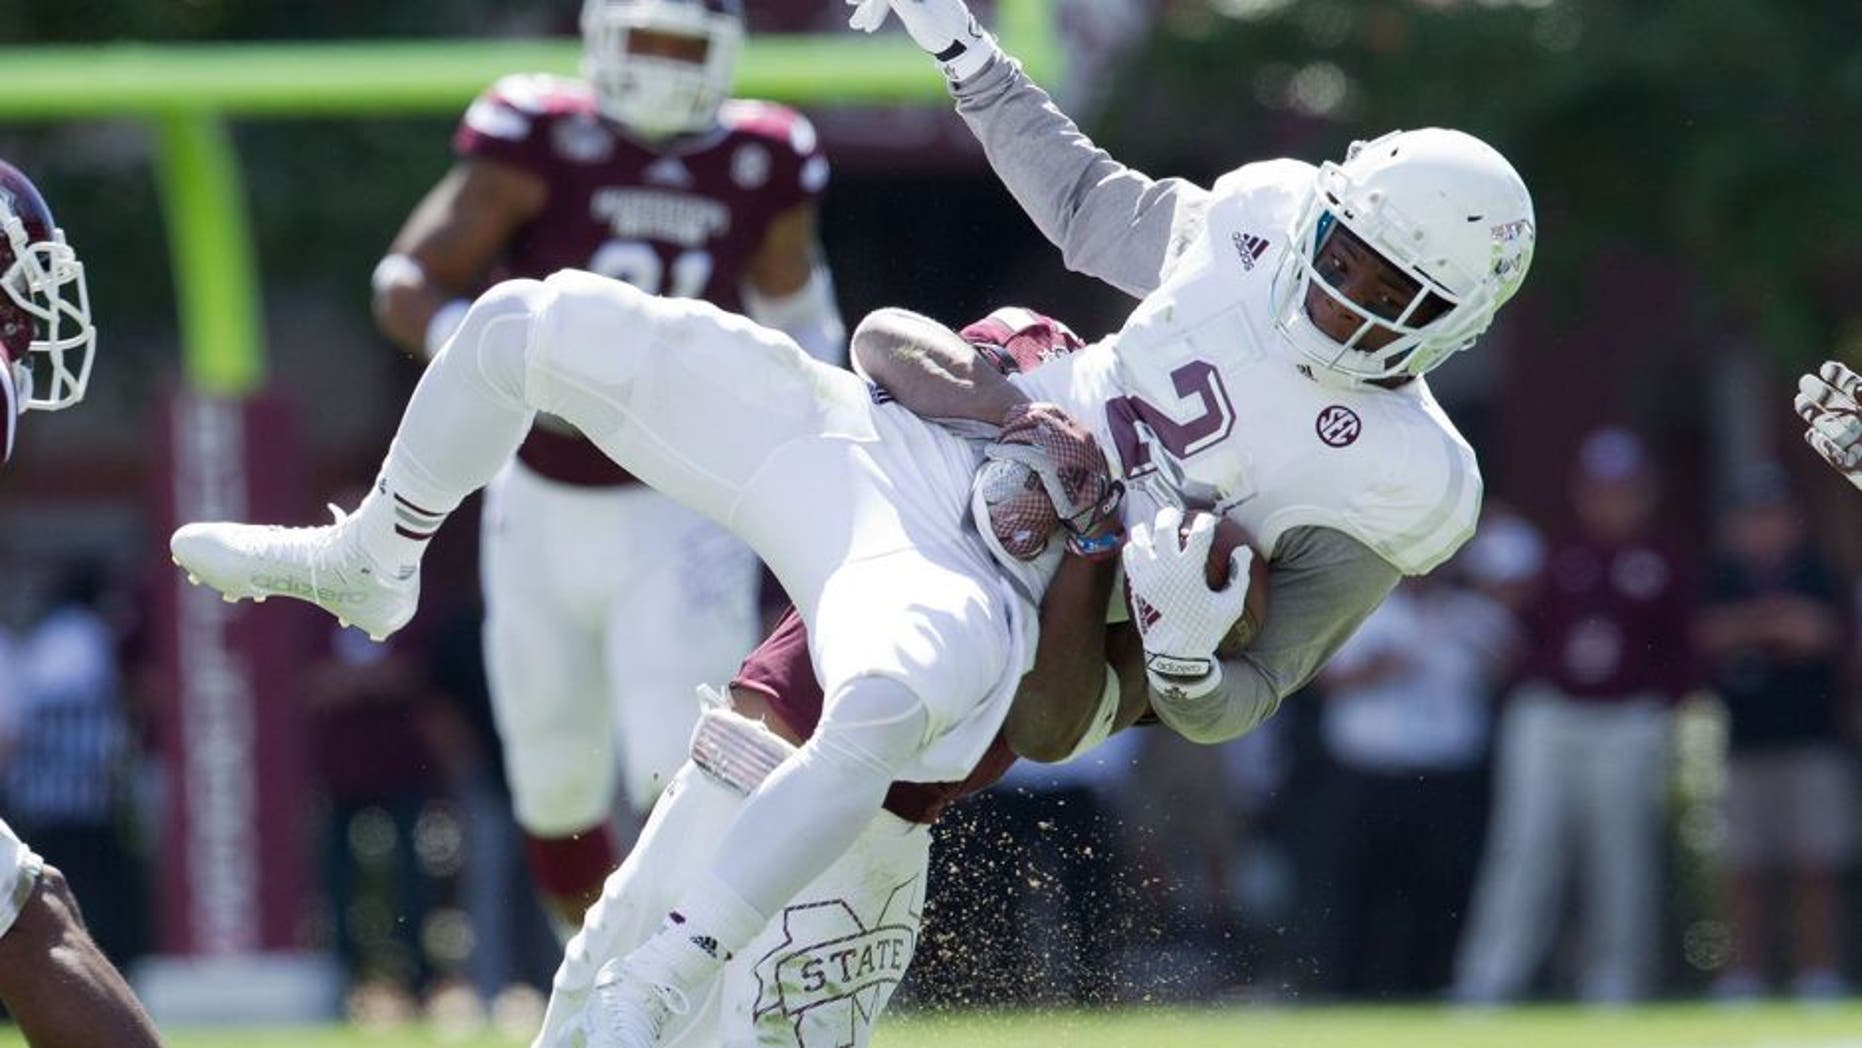 Oct 4, 2014; Starkville, MS, USA; Texas A&M Aggies wide receiver Speedy Noil (2) is grabbed by Mississippi State Bulldogs defensive back Taveze Calhoun (23) at Davis Wade Stadium. Mandatory Credit: Marvin Gentry-USA TODAY Sports